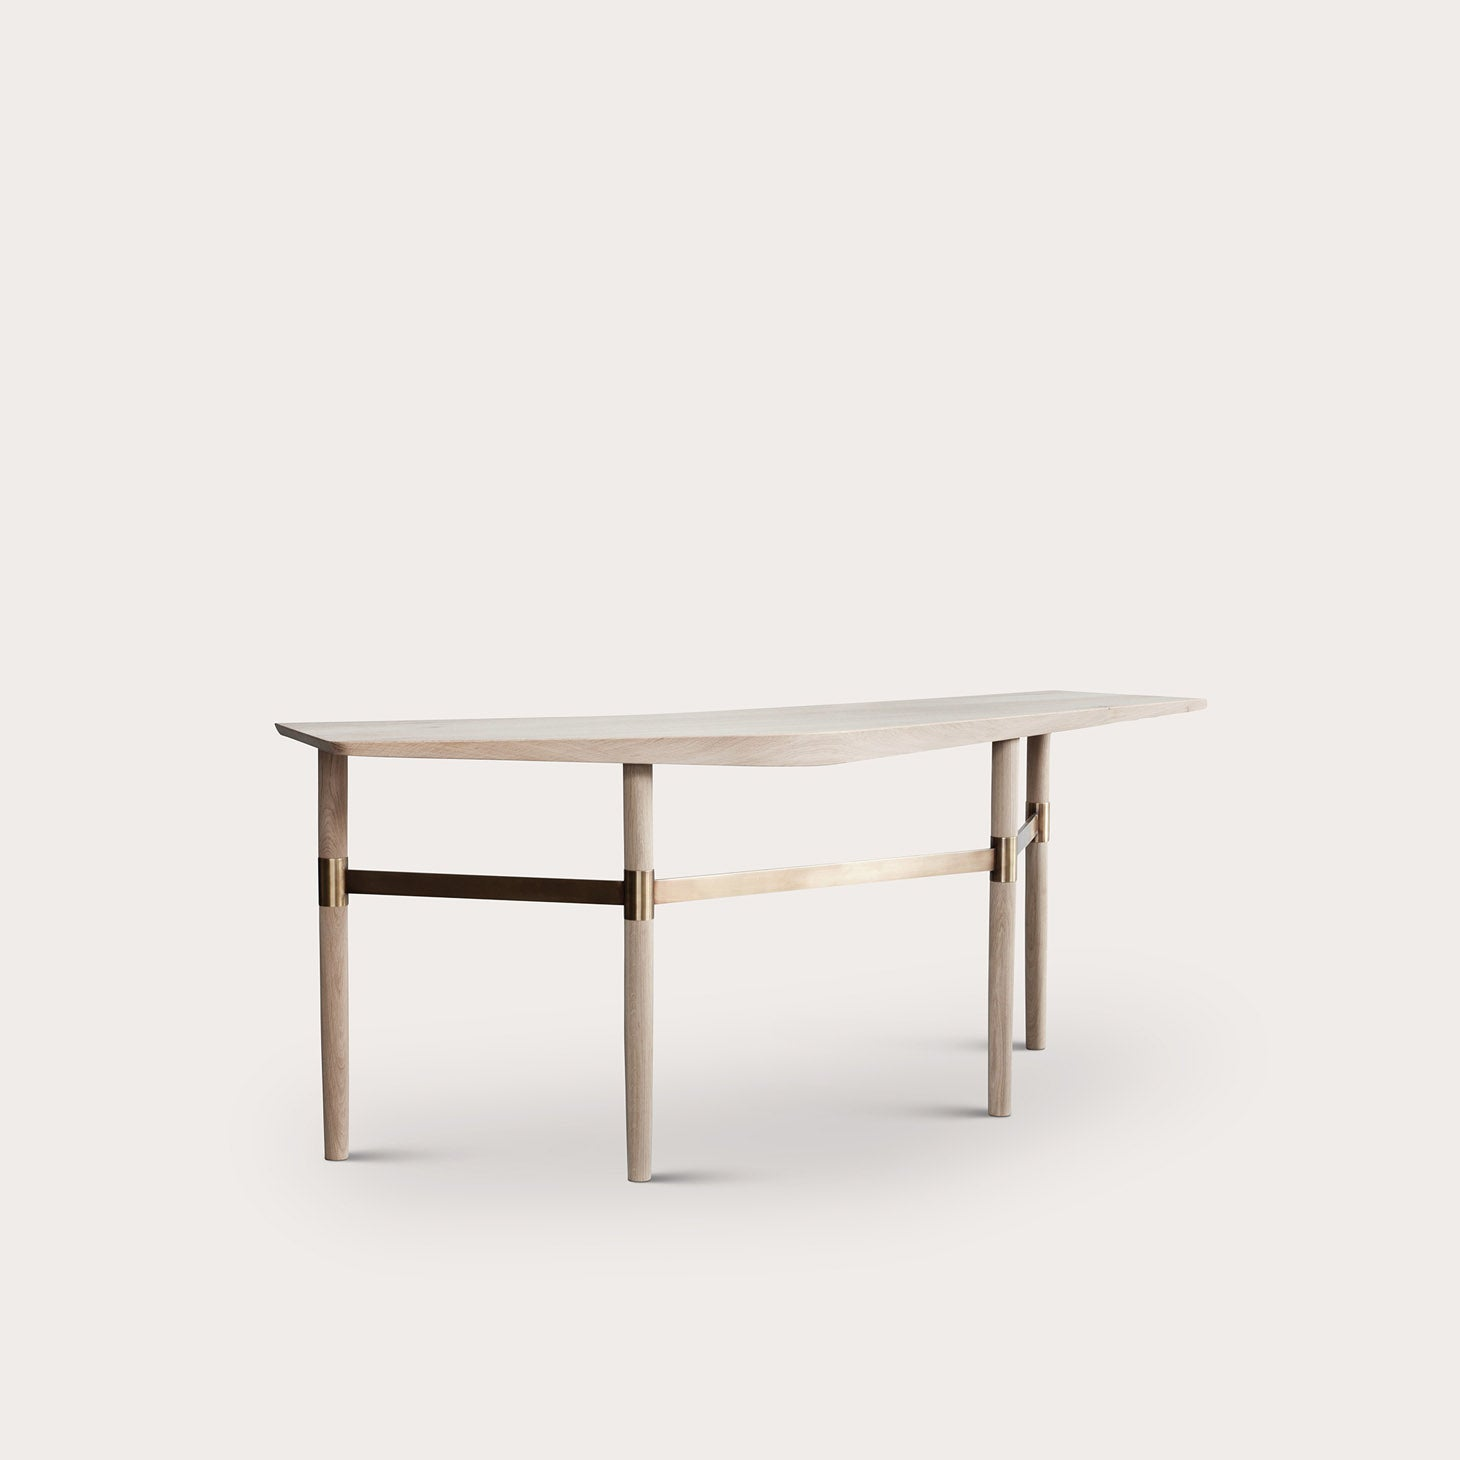 Darling Point Tables Yabu Pushelberg Designer Furniture Sku: 416-230-10108